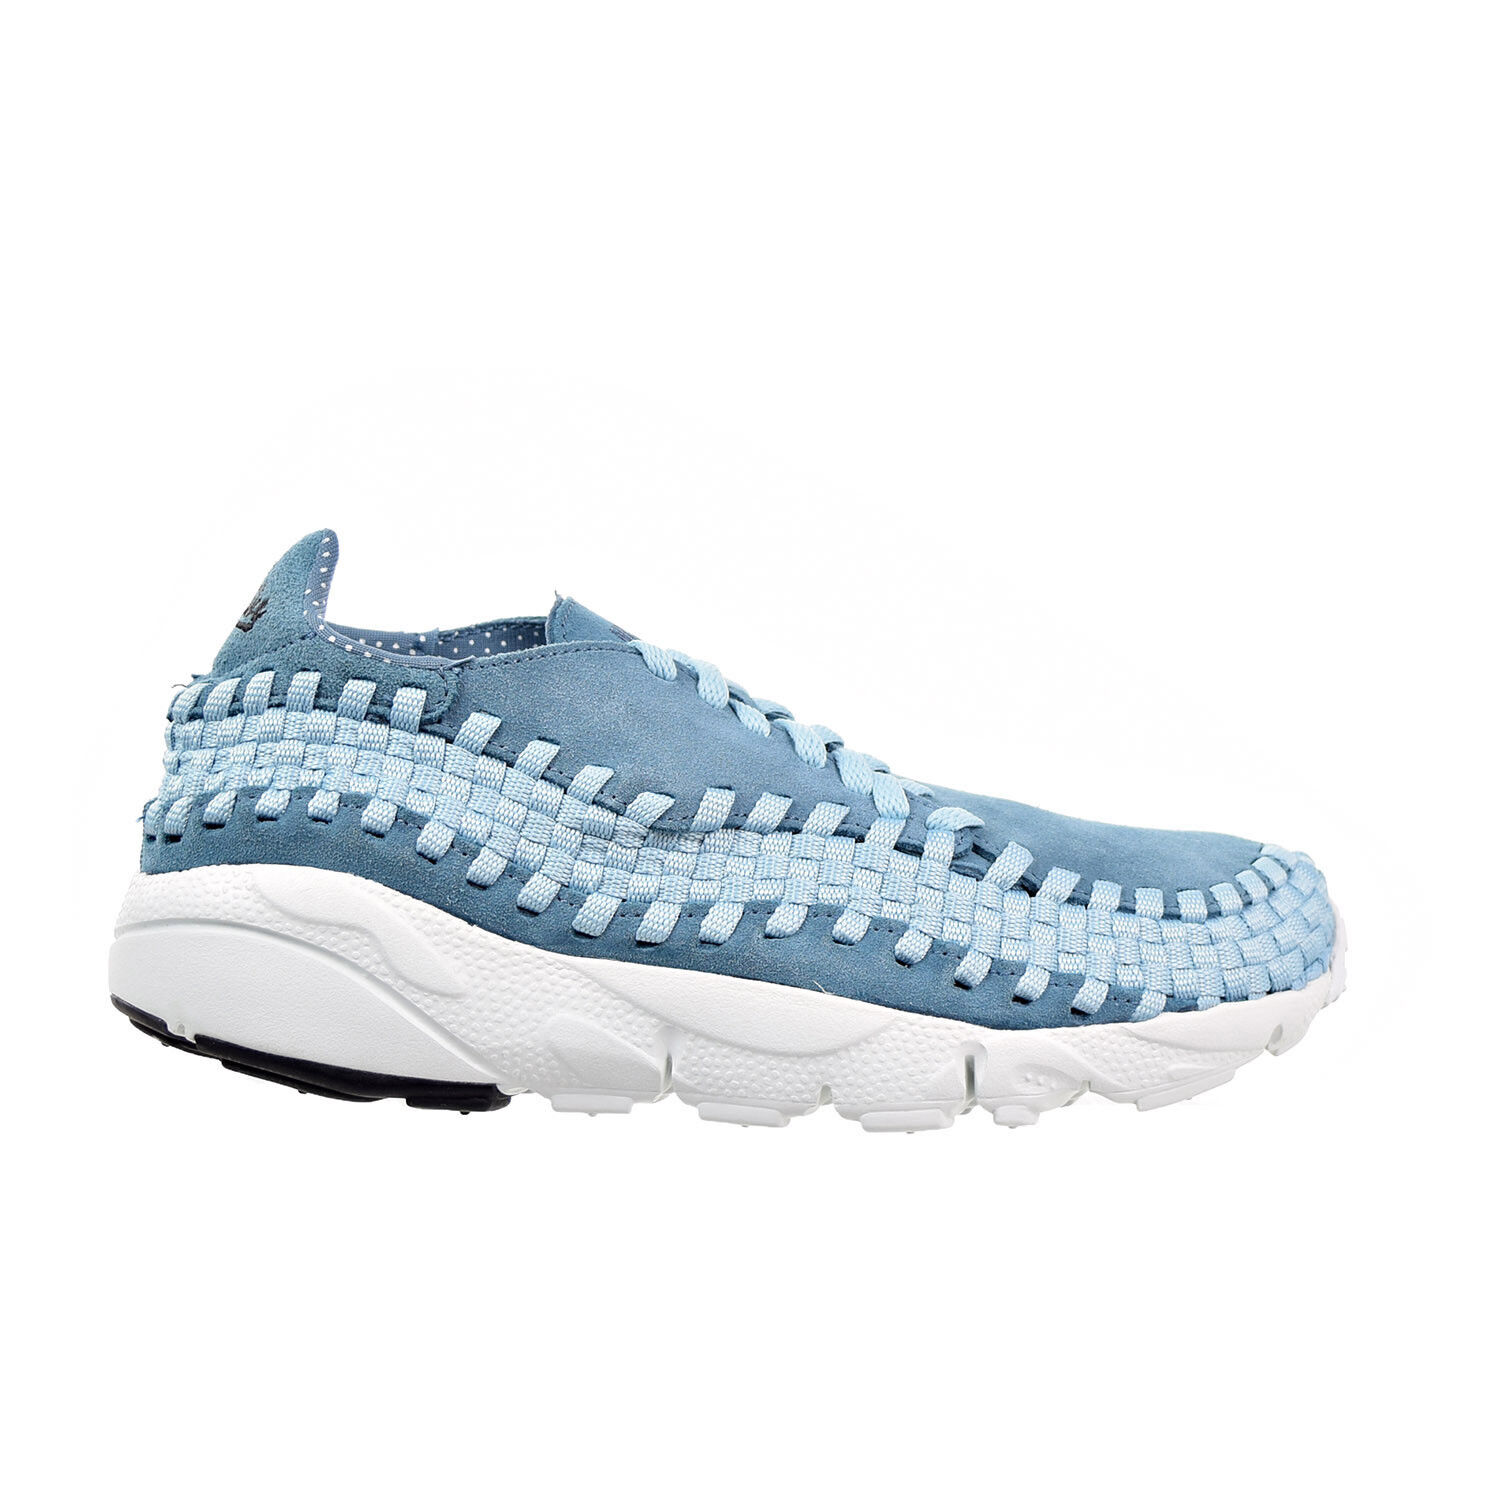 Nike air footscape tessuti nm uomini scarpa blu / bianco 875797-002 smokey